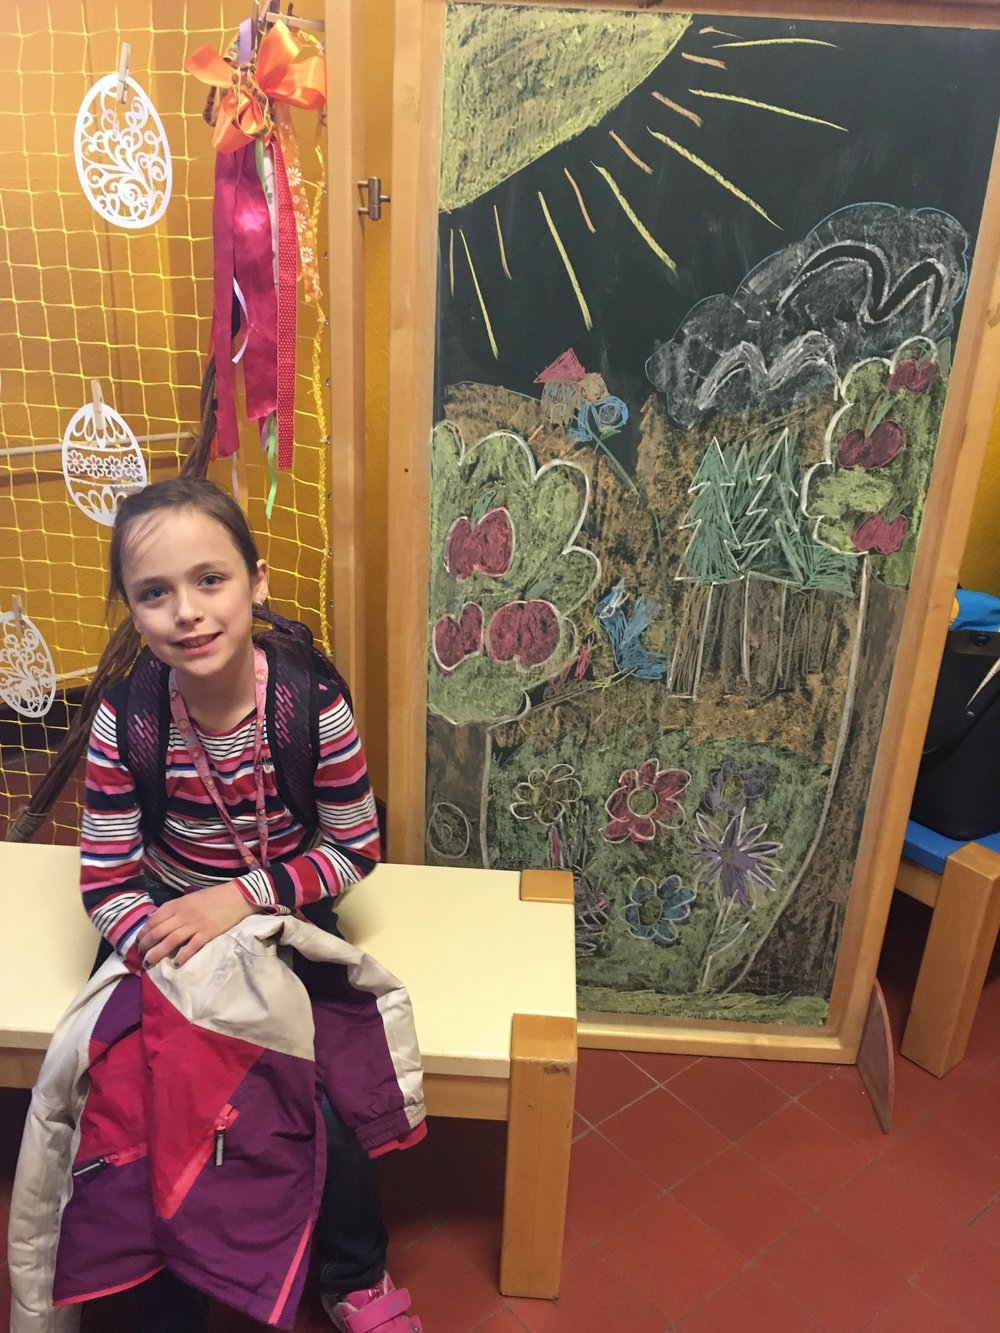 Addey's teachers like her art so much that they asked her to do this for the main entrance of the school during the Easter season.